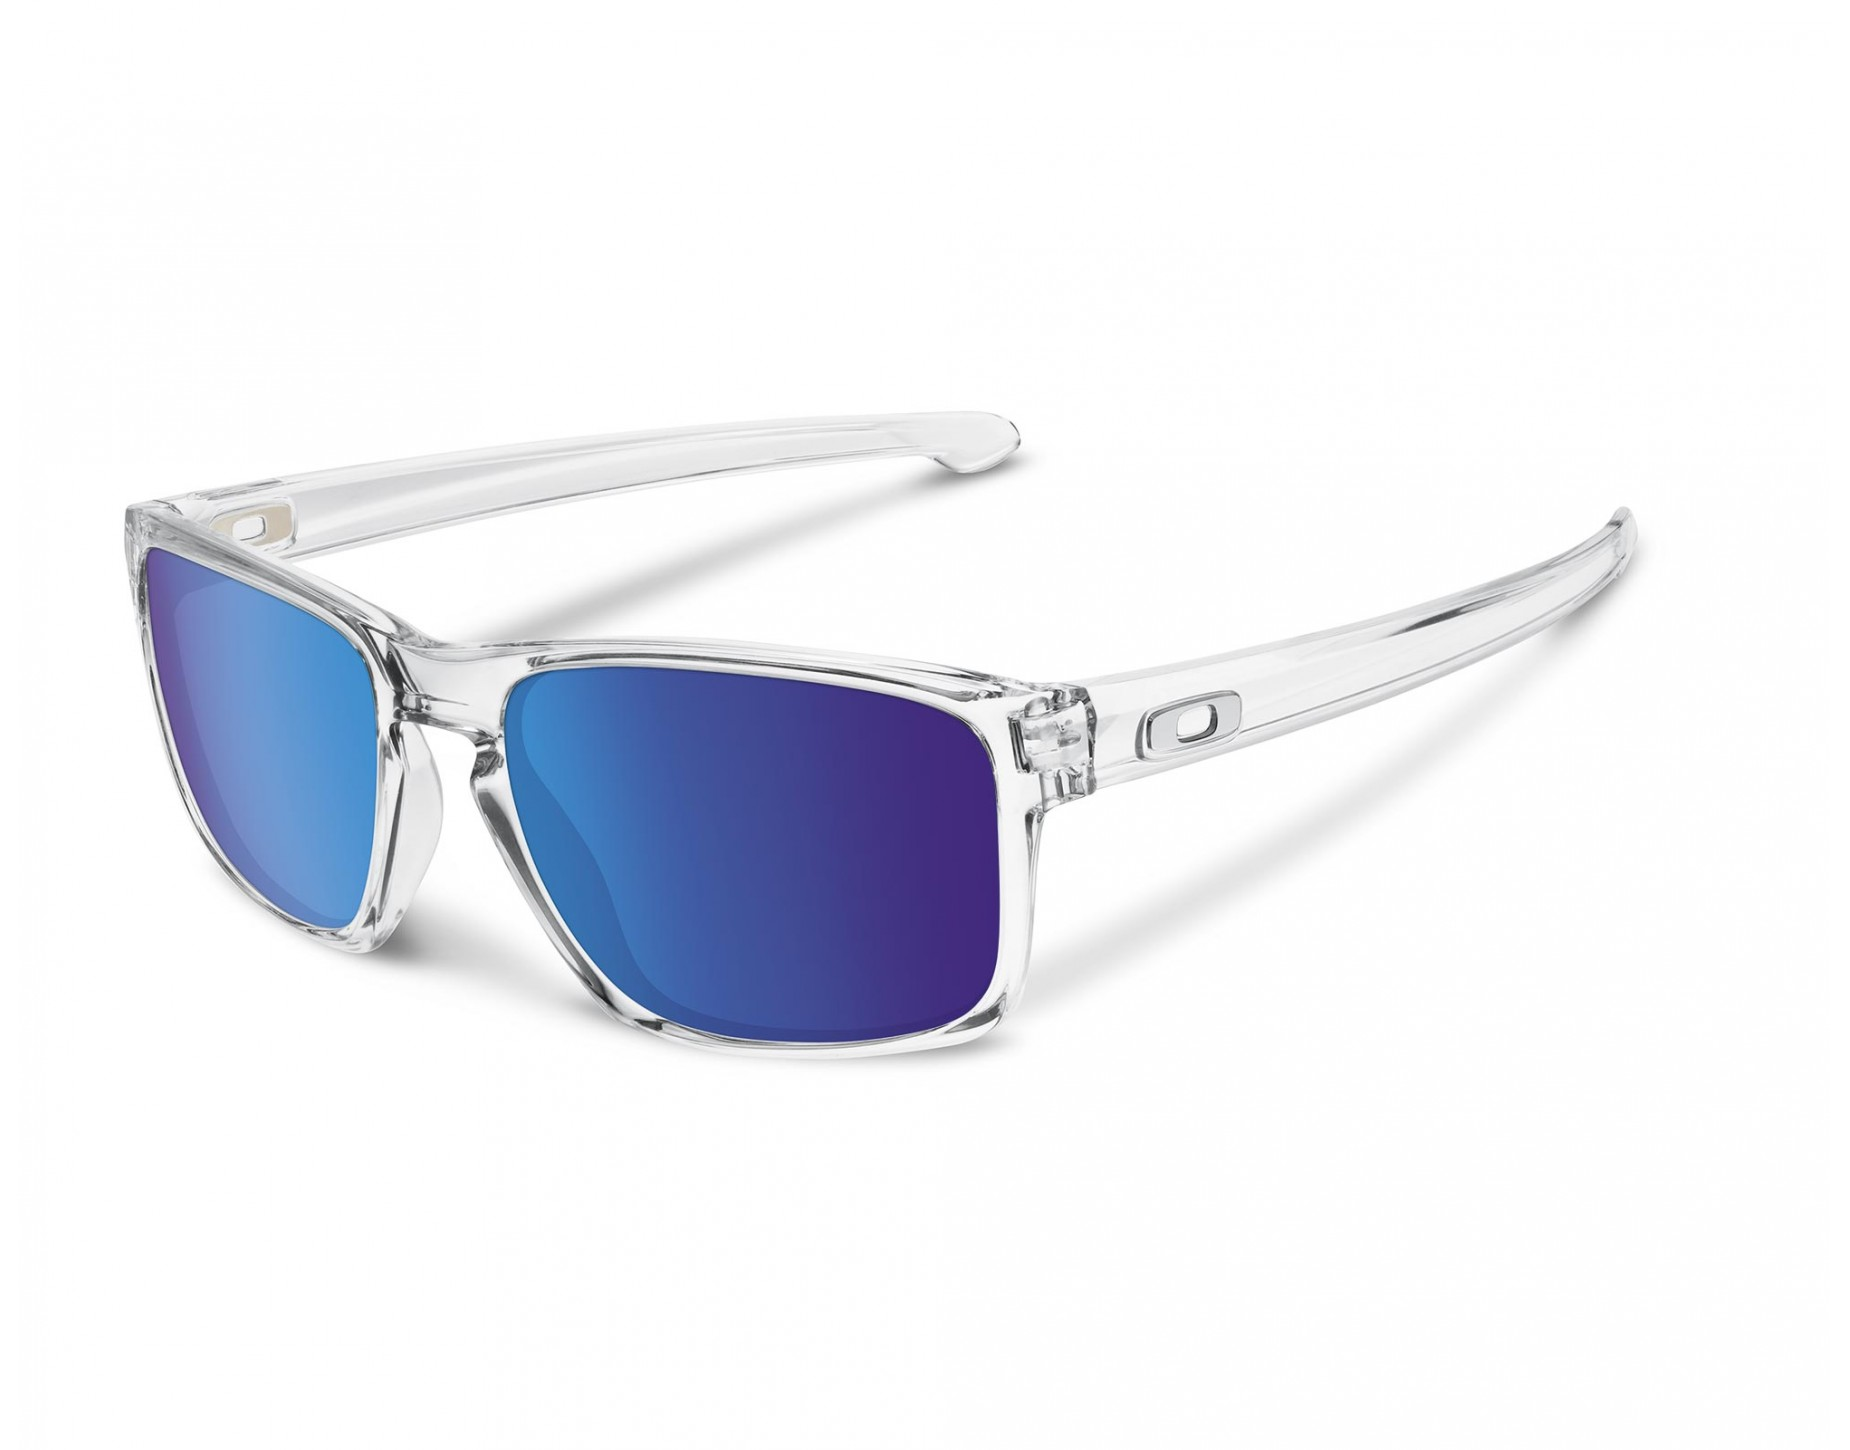 Silver Oakley Sunglasses